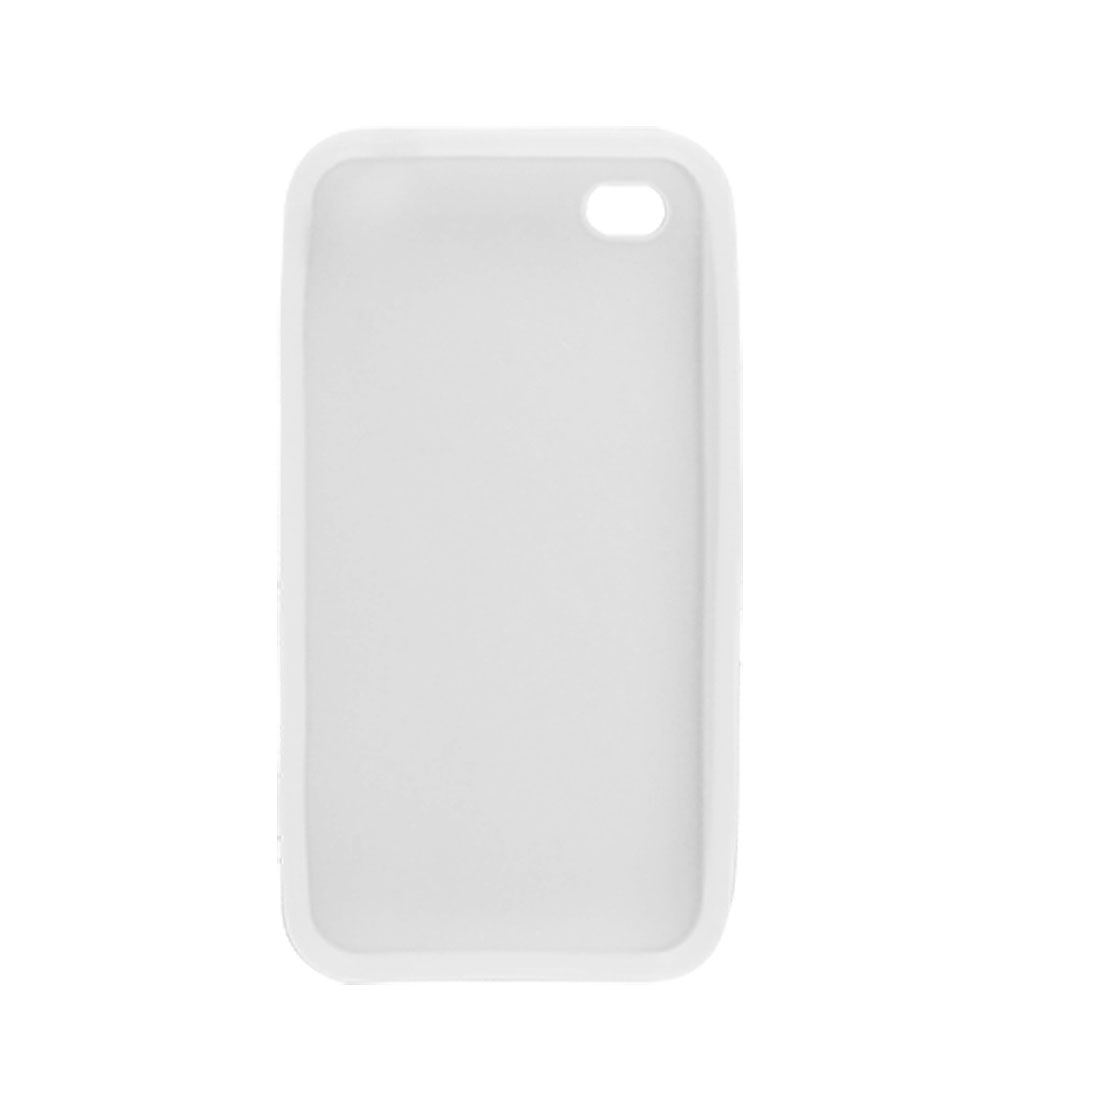 Protective Silicone Skin White Case for Apple iPhone 4 - image 1 of 1